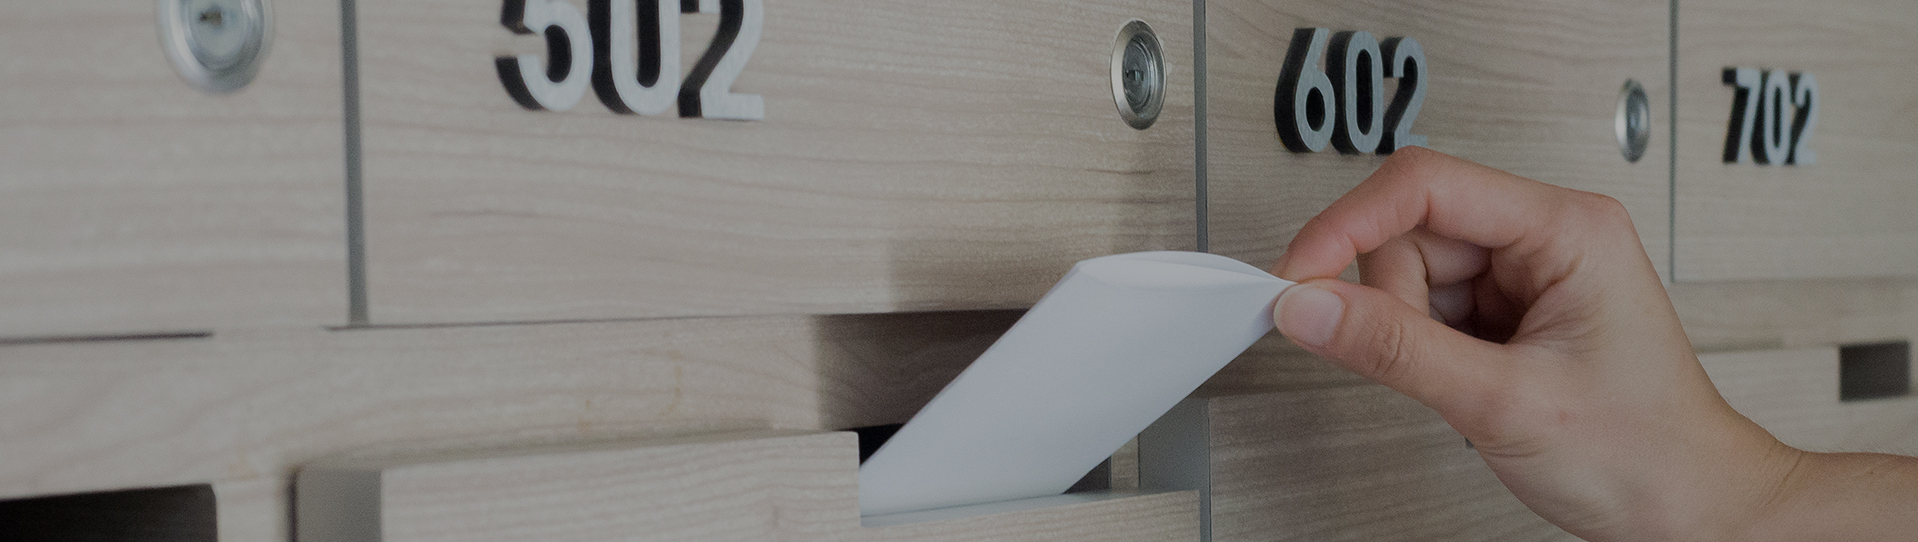 apartment letterbox with a white letter sticking out